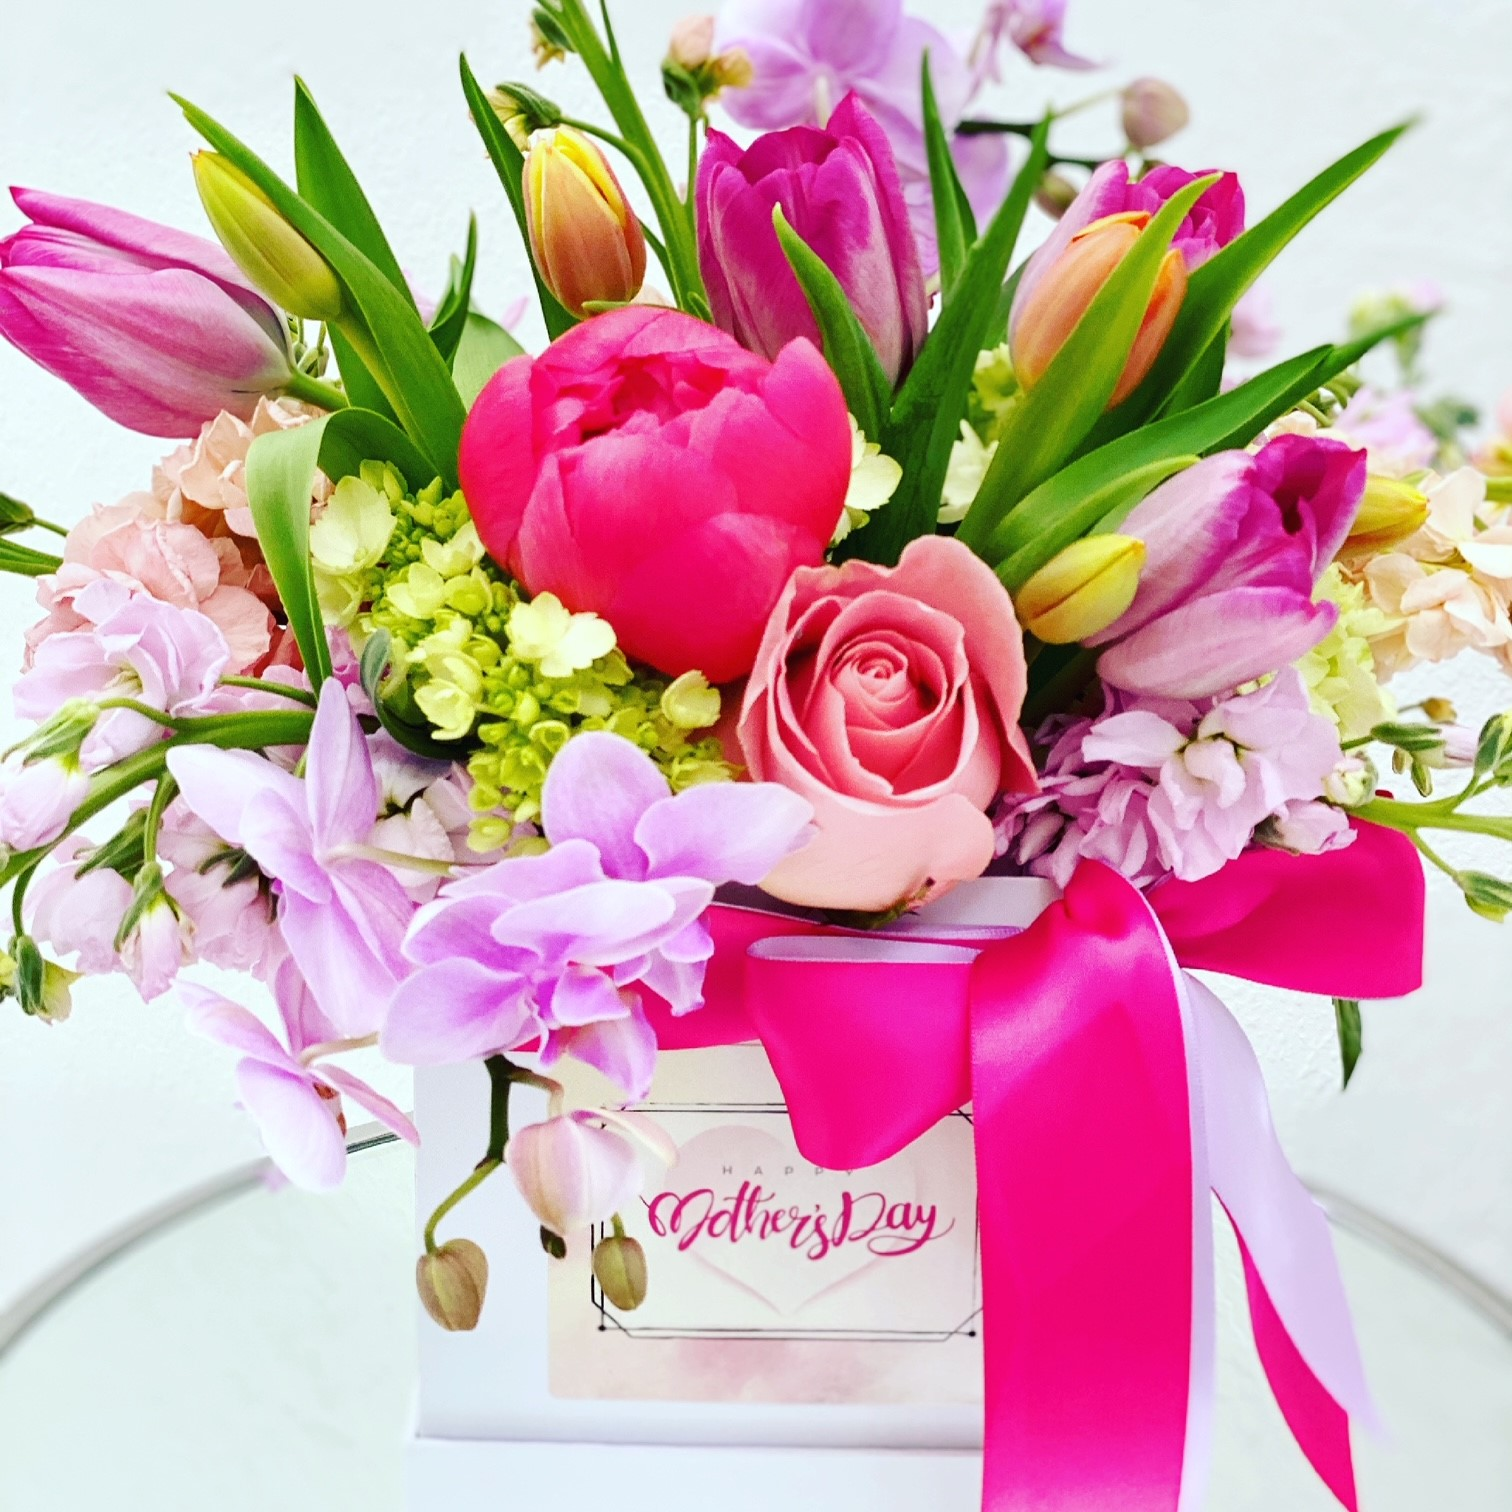 Doral Orchids Miami. Mother's Day Bouquets - Order Early! A Doral Chamber of Commerce Member.